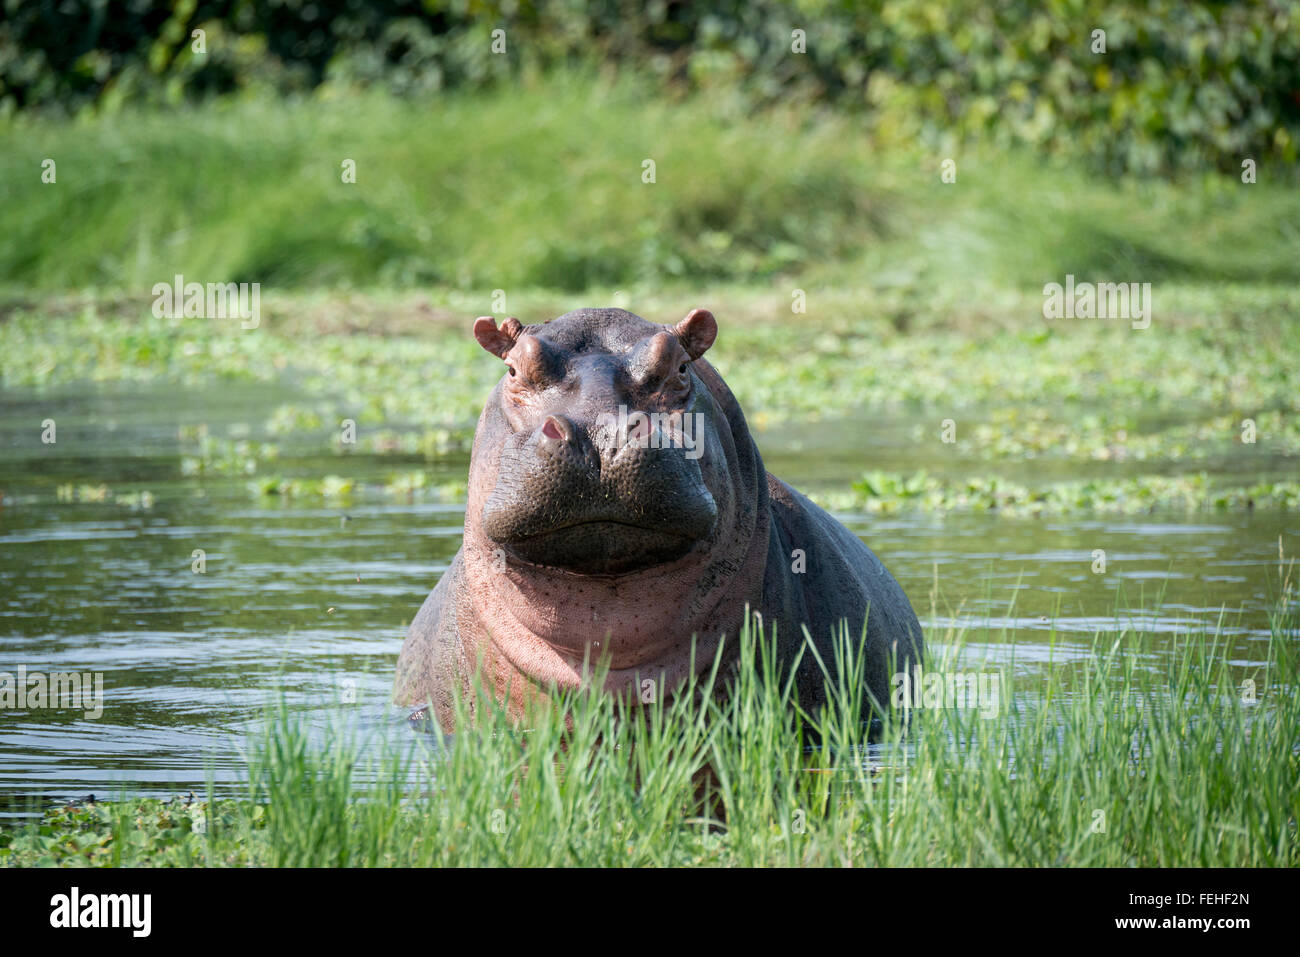 A rare saltwater hippo on the island of Orango in the Bijagos archipelago of Guinea Bissau - Stock Image